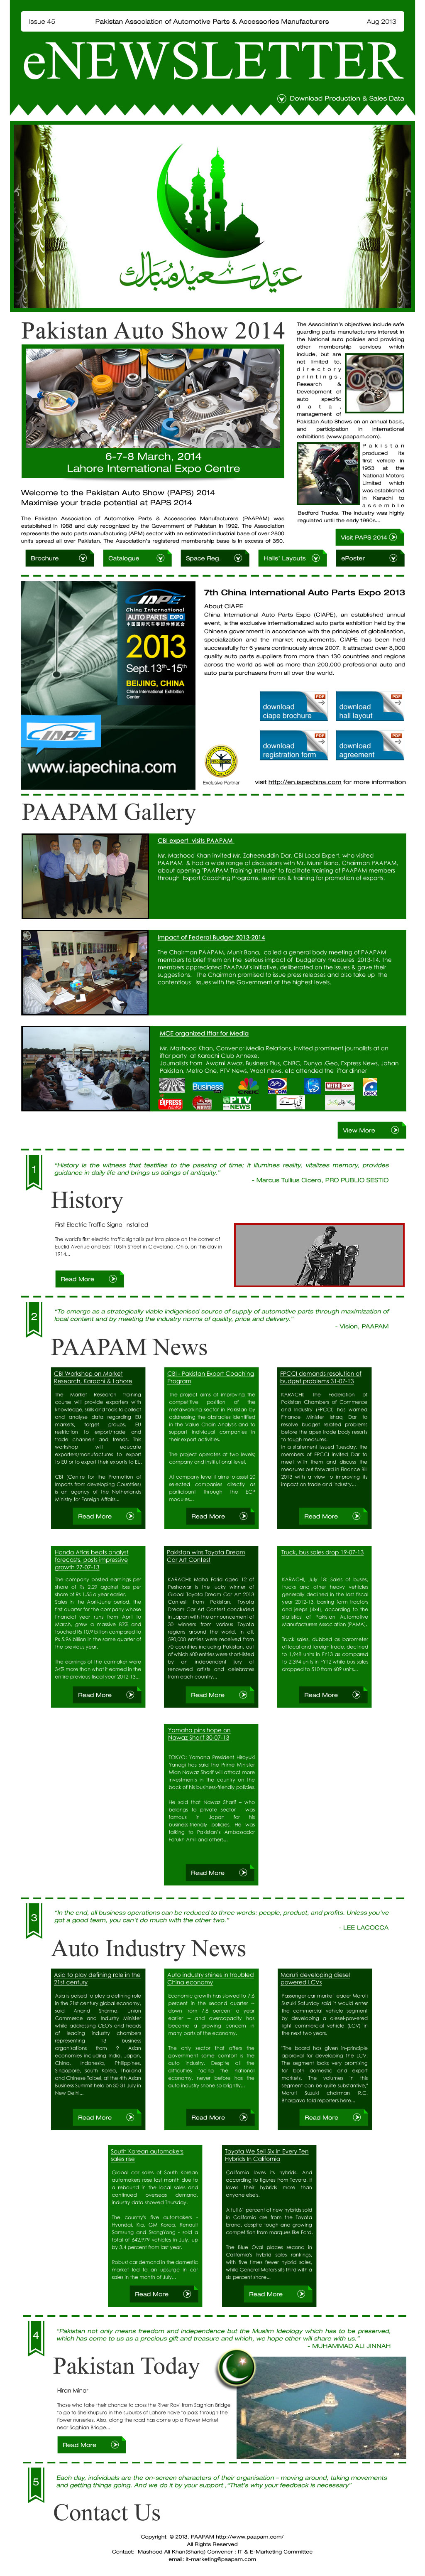 PAAPAM NEWSLETTER :: Issue 45